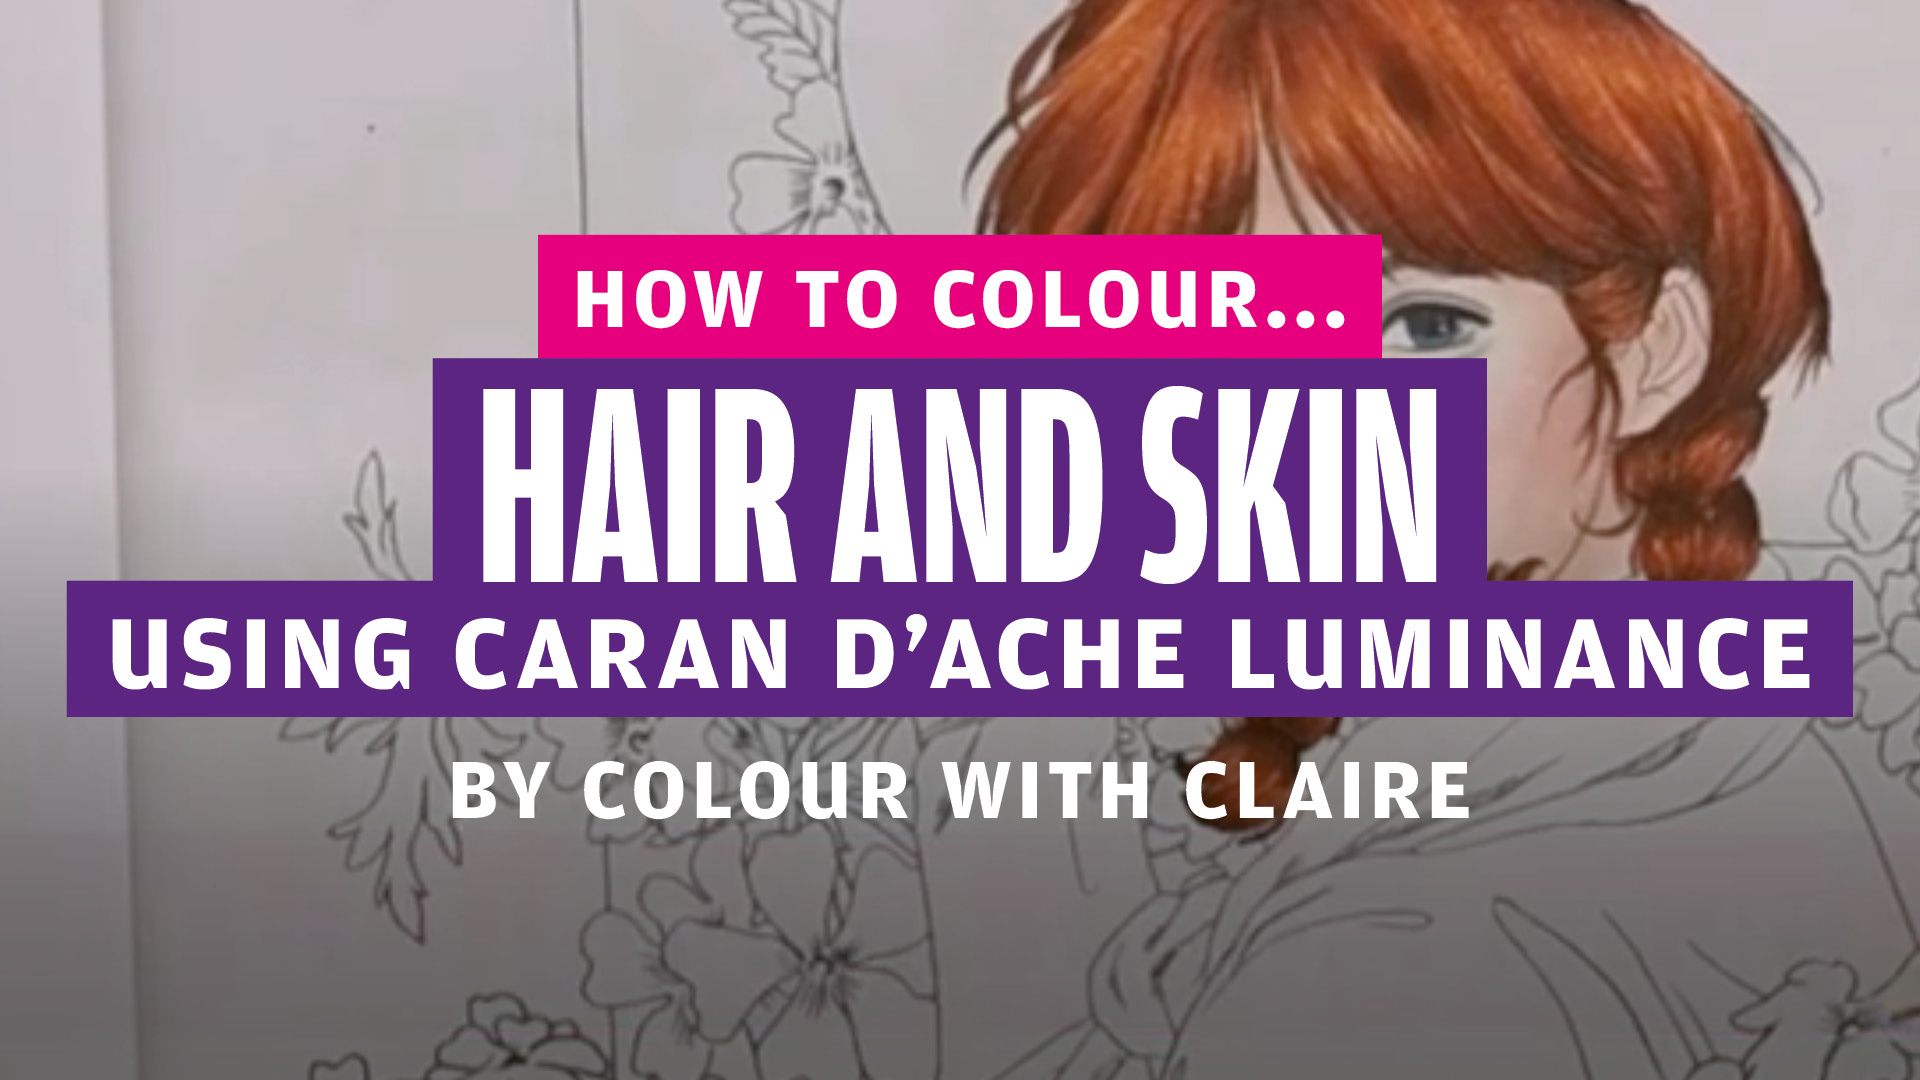 How to colour… hair and skin